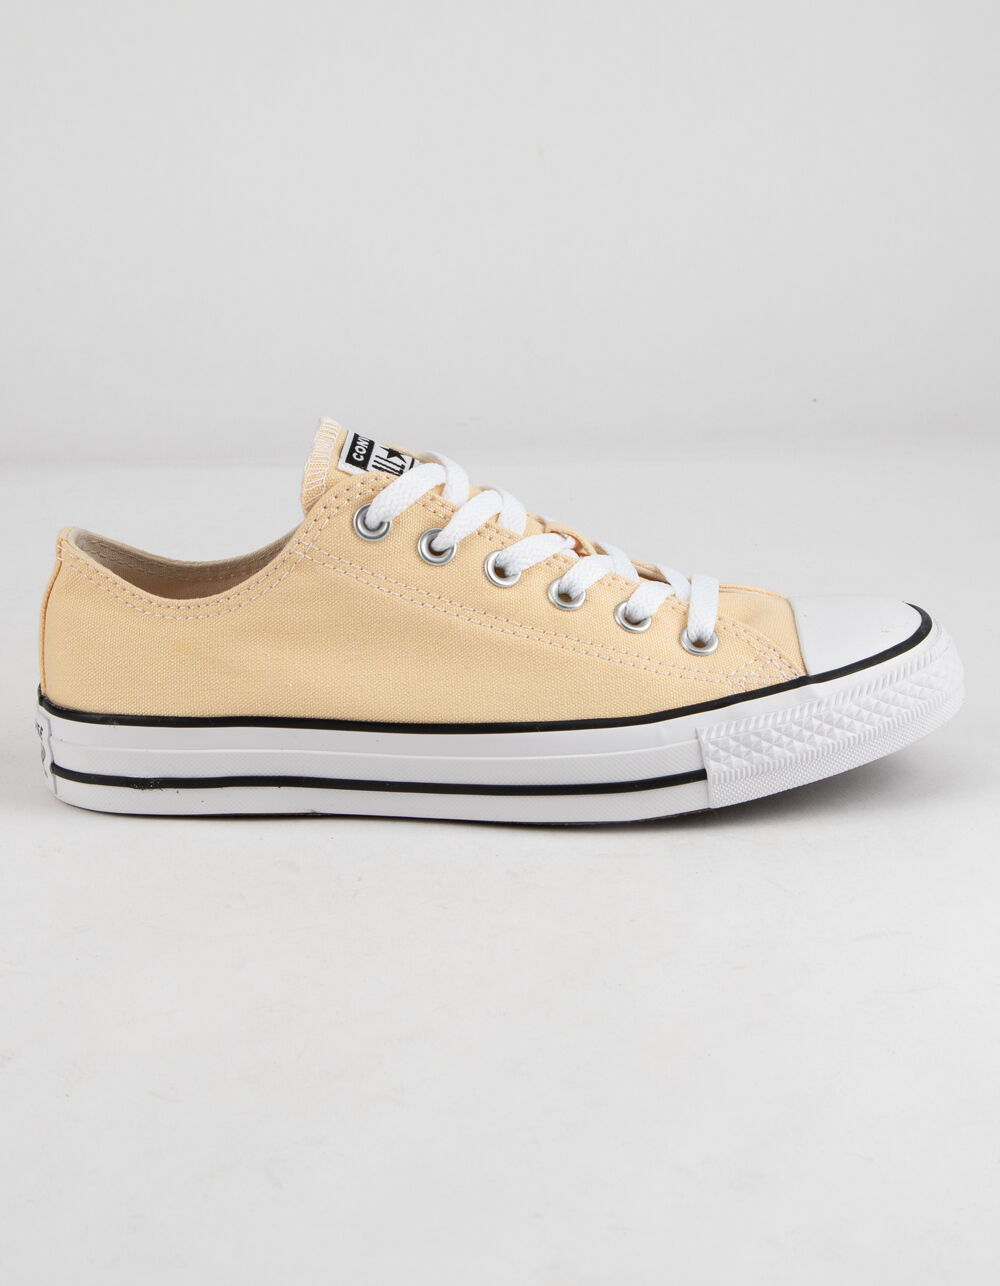 Image of CONVERSE CHUCK TAYLOR ALL STAR OX SEASONAL PALE VANILLA SHOES